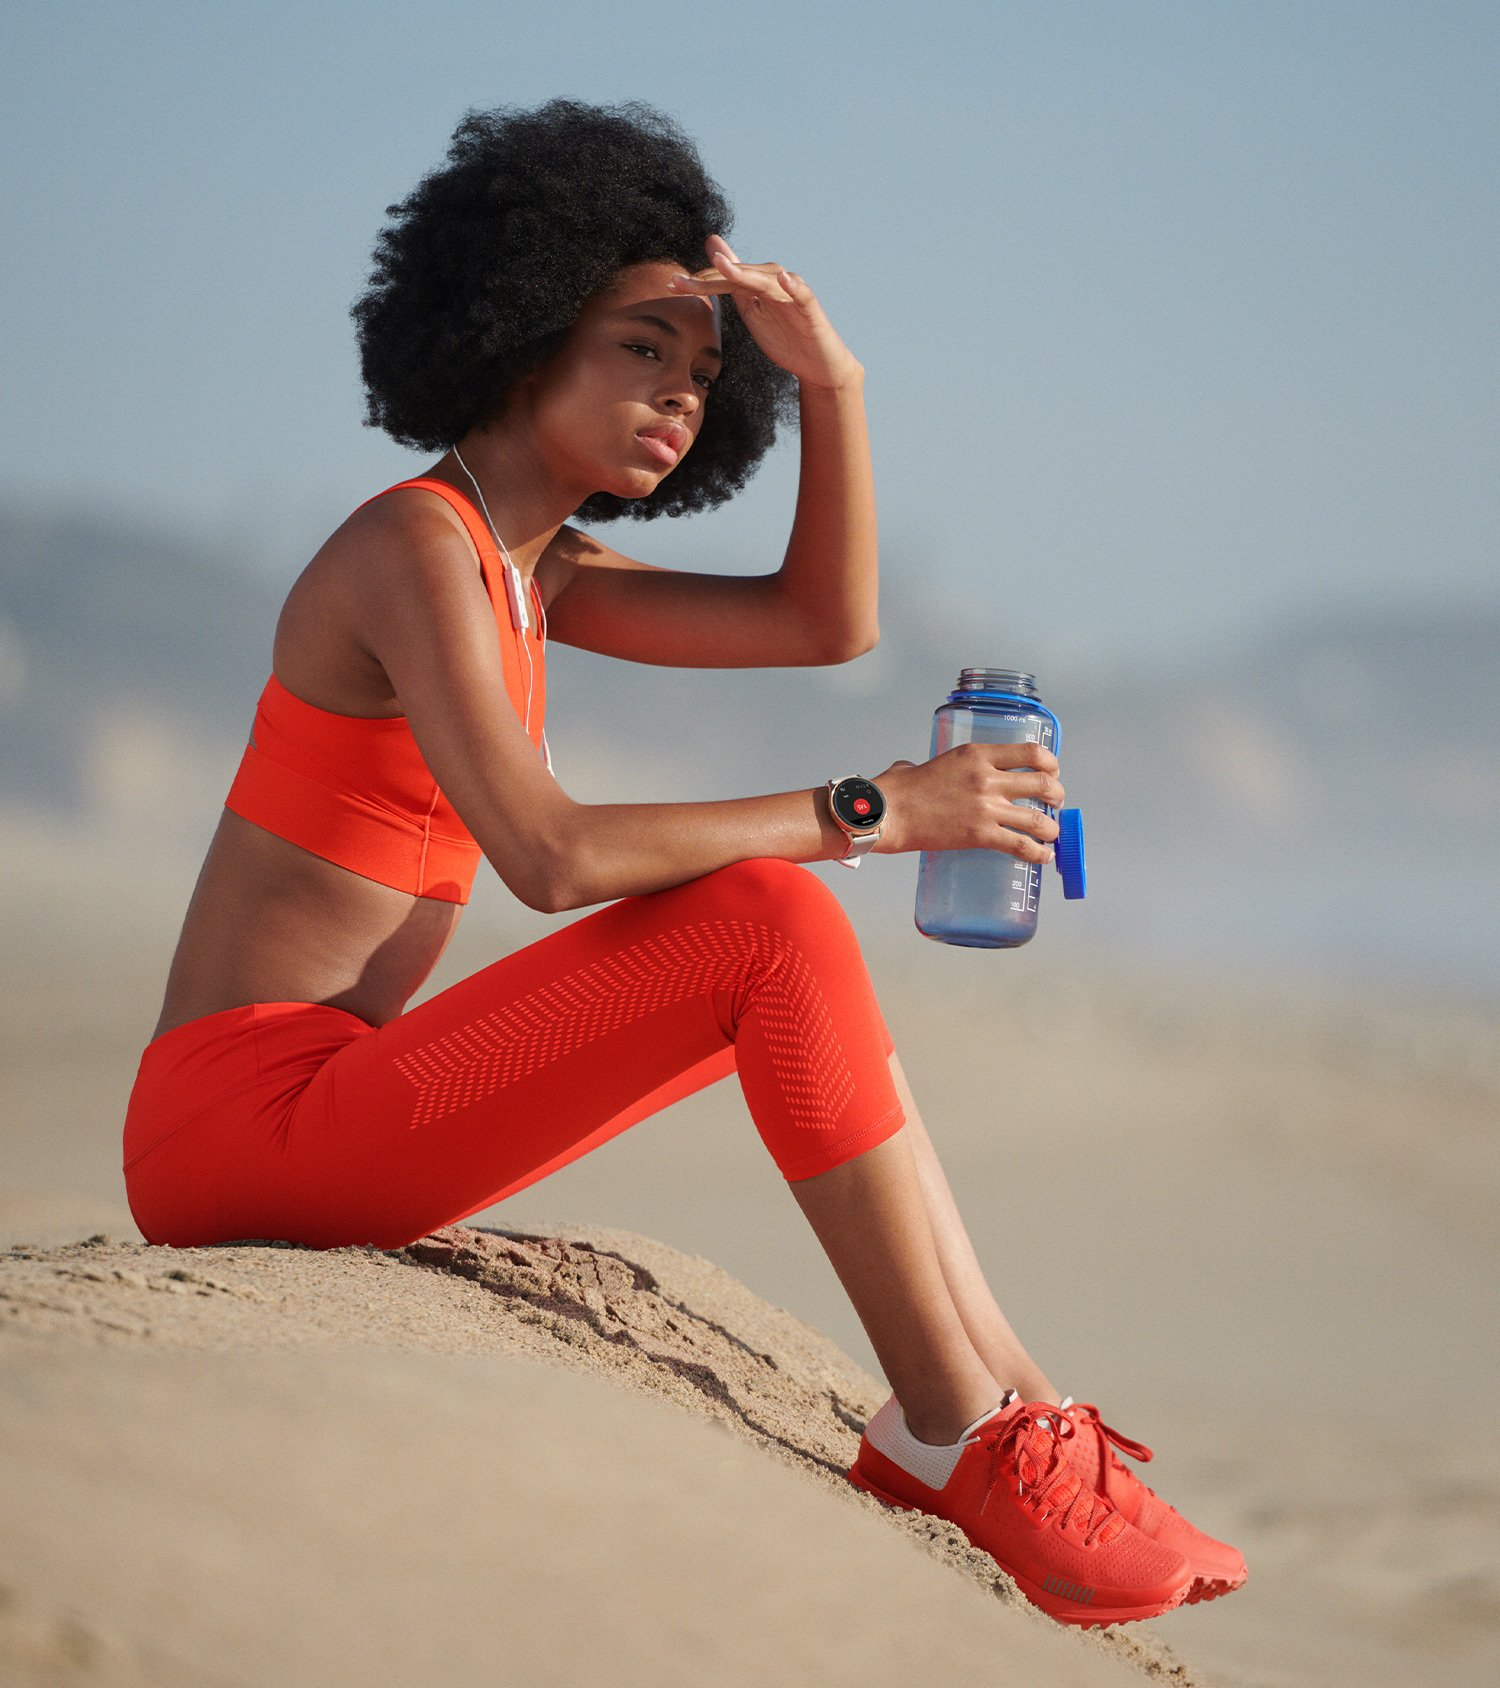 Woman sitting on the beach in all red workout attire with matching Google Wear OS watch, art direction by RoAndCo